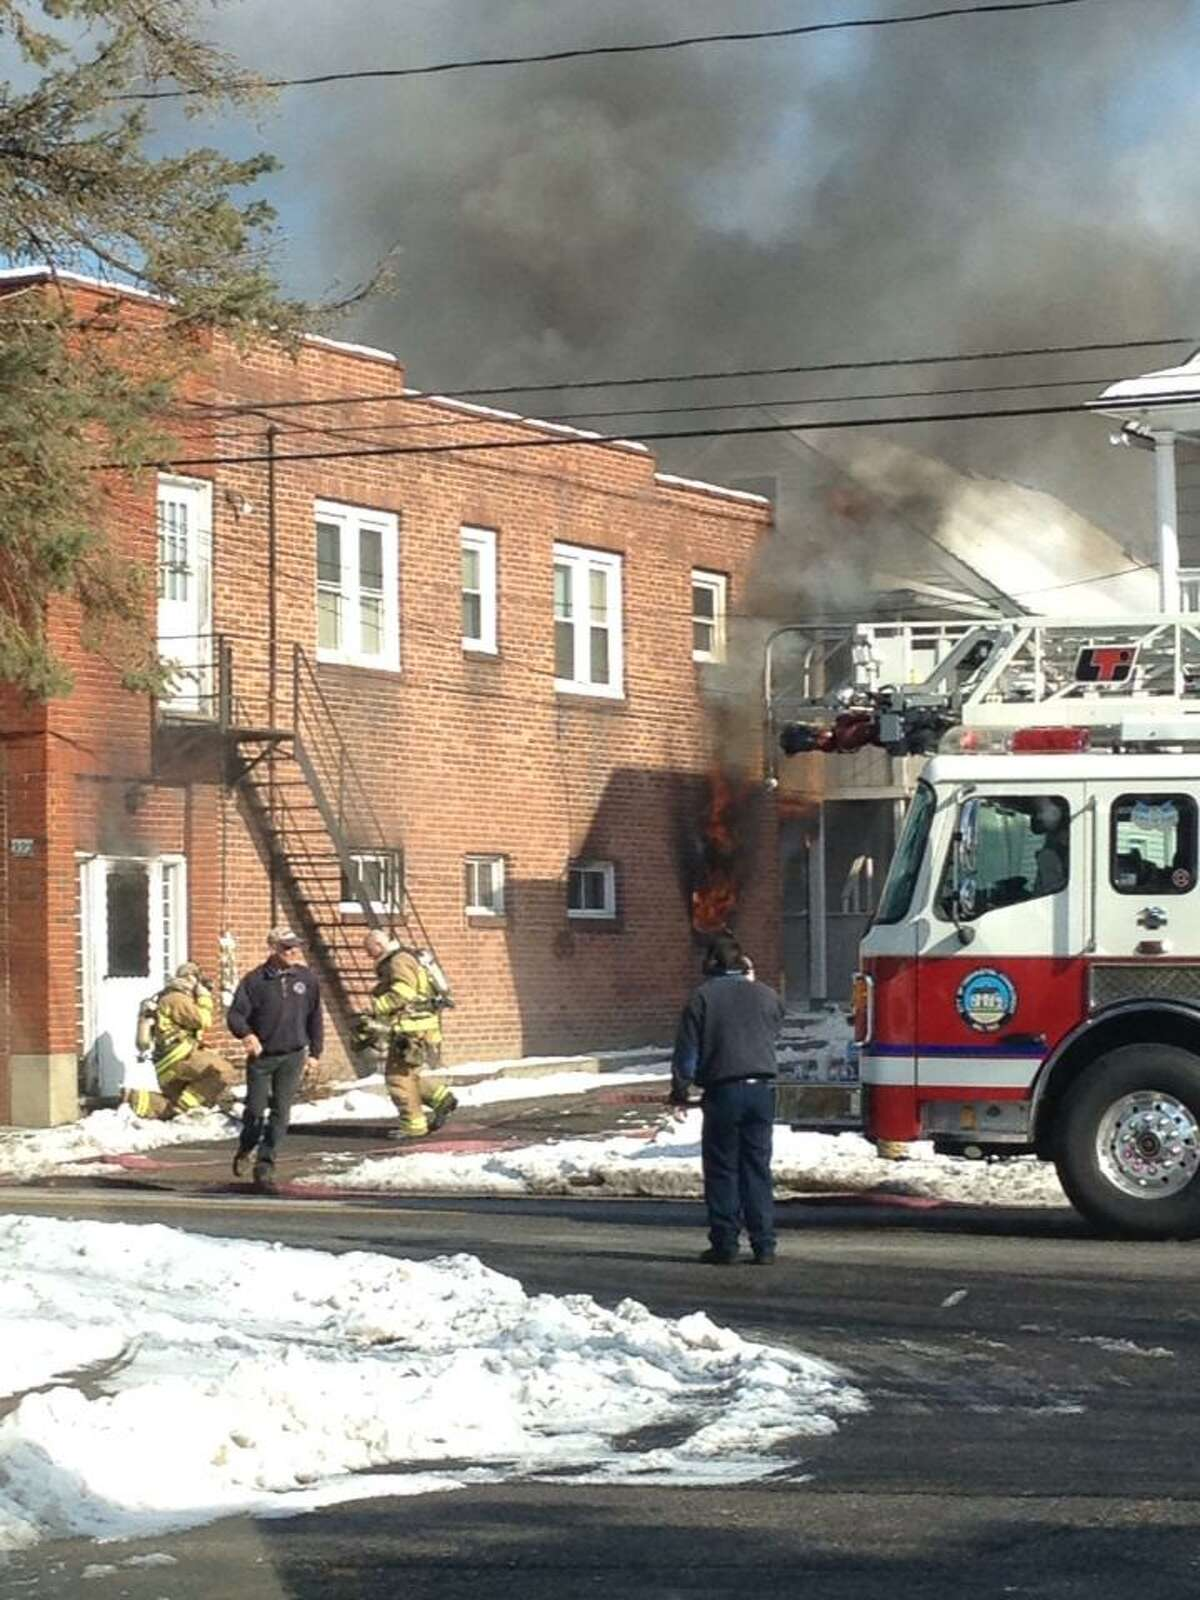 A fire on North Elm Street in Torrington on Wednesday, March 20, 2013 left a family homeless. Photo contributed by Tracy Woodward.